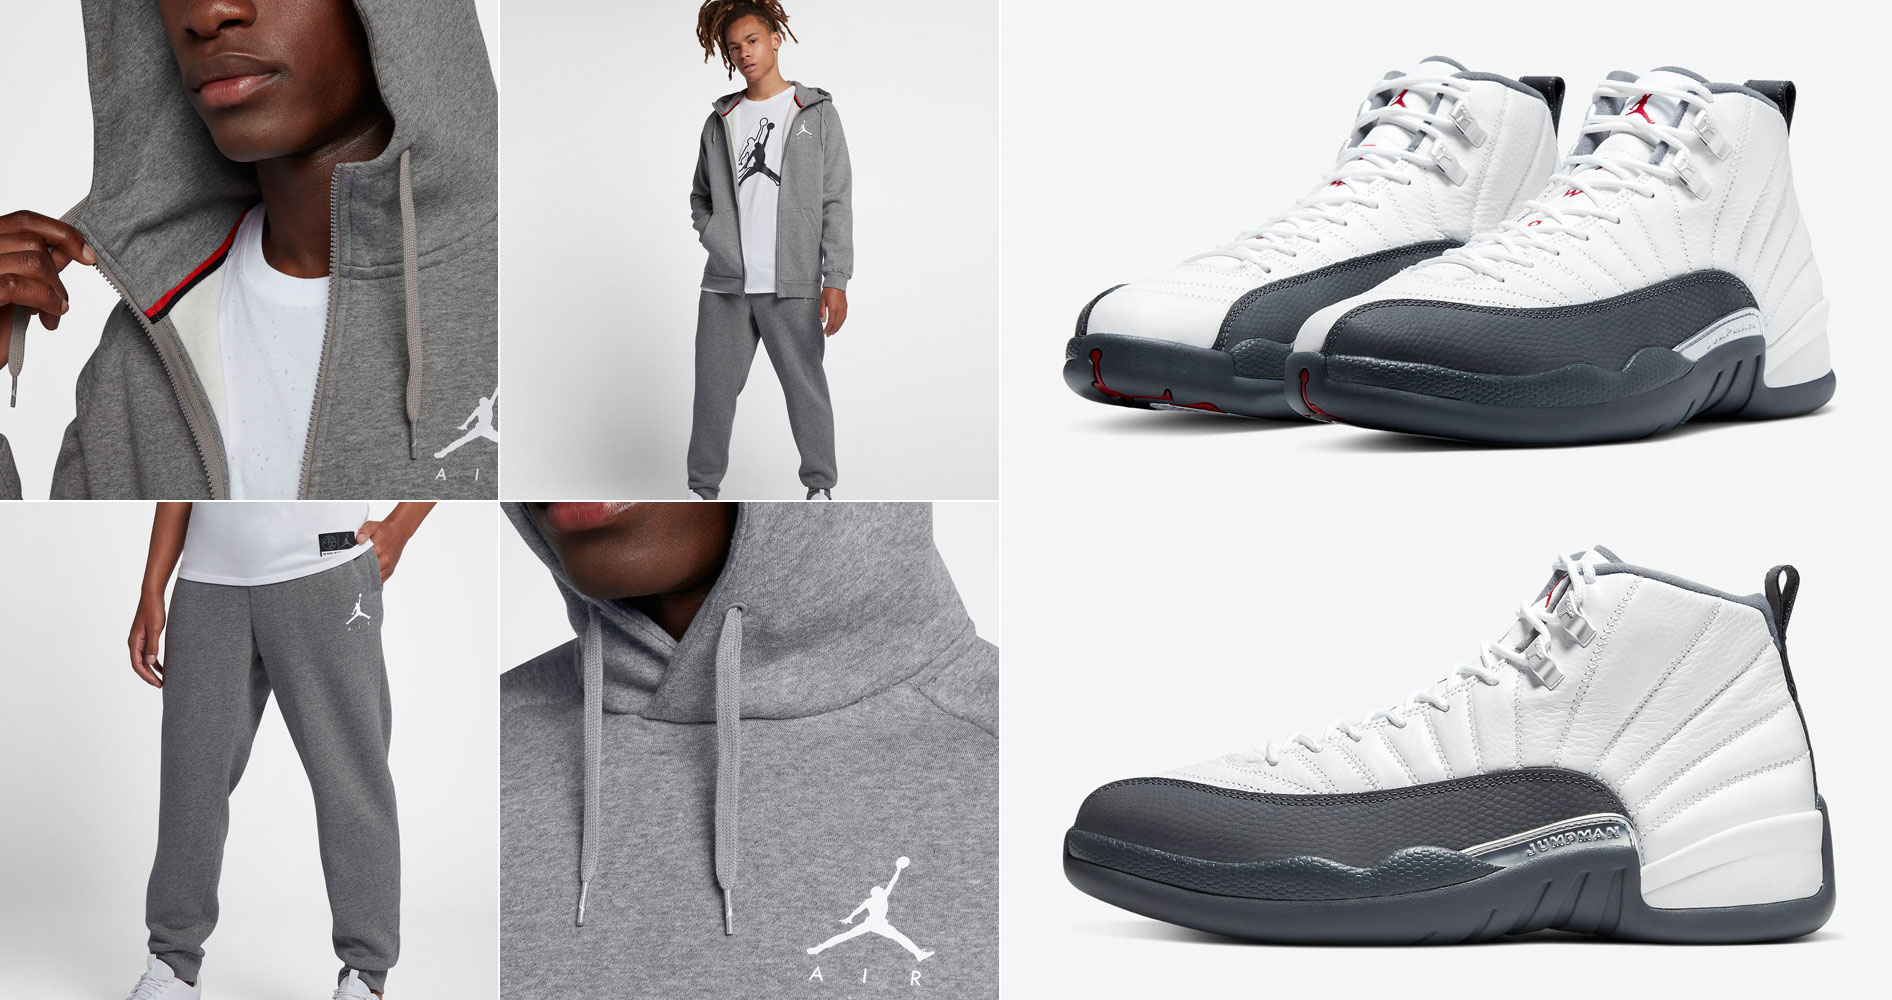 air-jordan-12-white-dark-grey-hoodies-jogger-pants-match